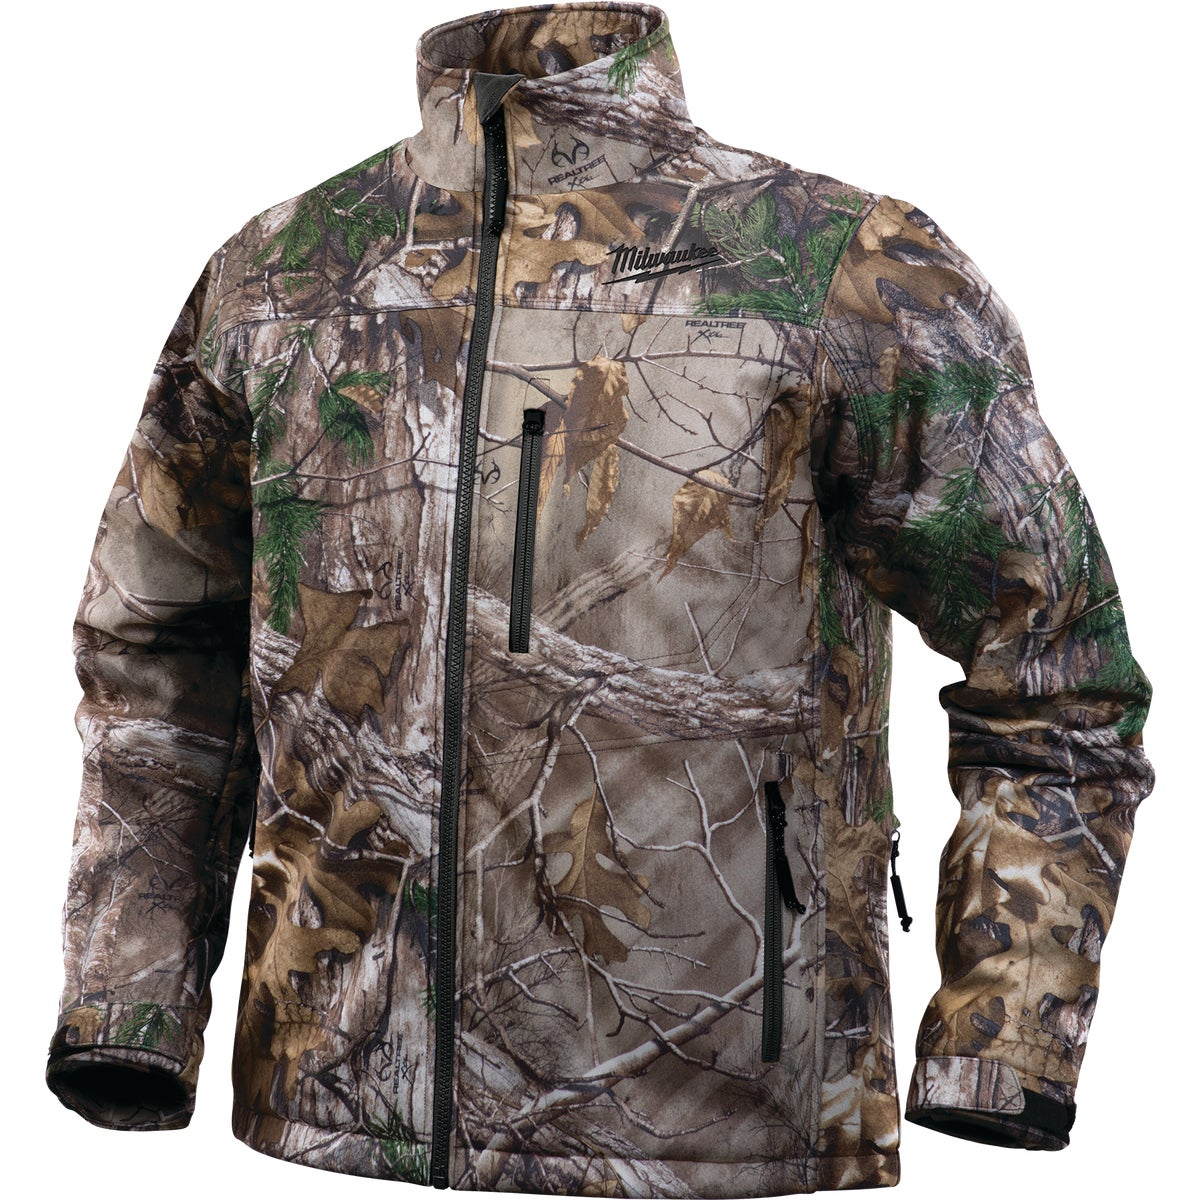 M12 XL CAMO HEATD JACKET - 2393-XL by Milwaukee Elec Tool